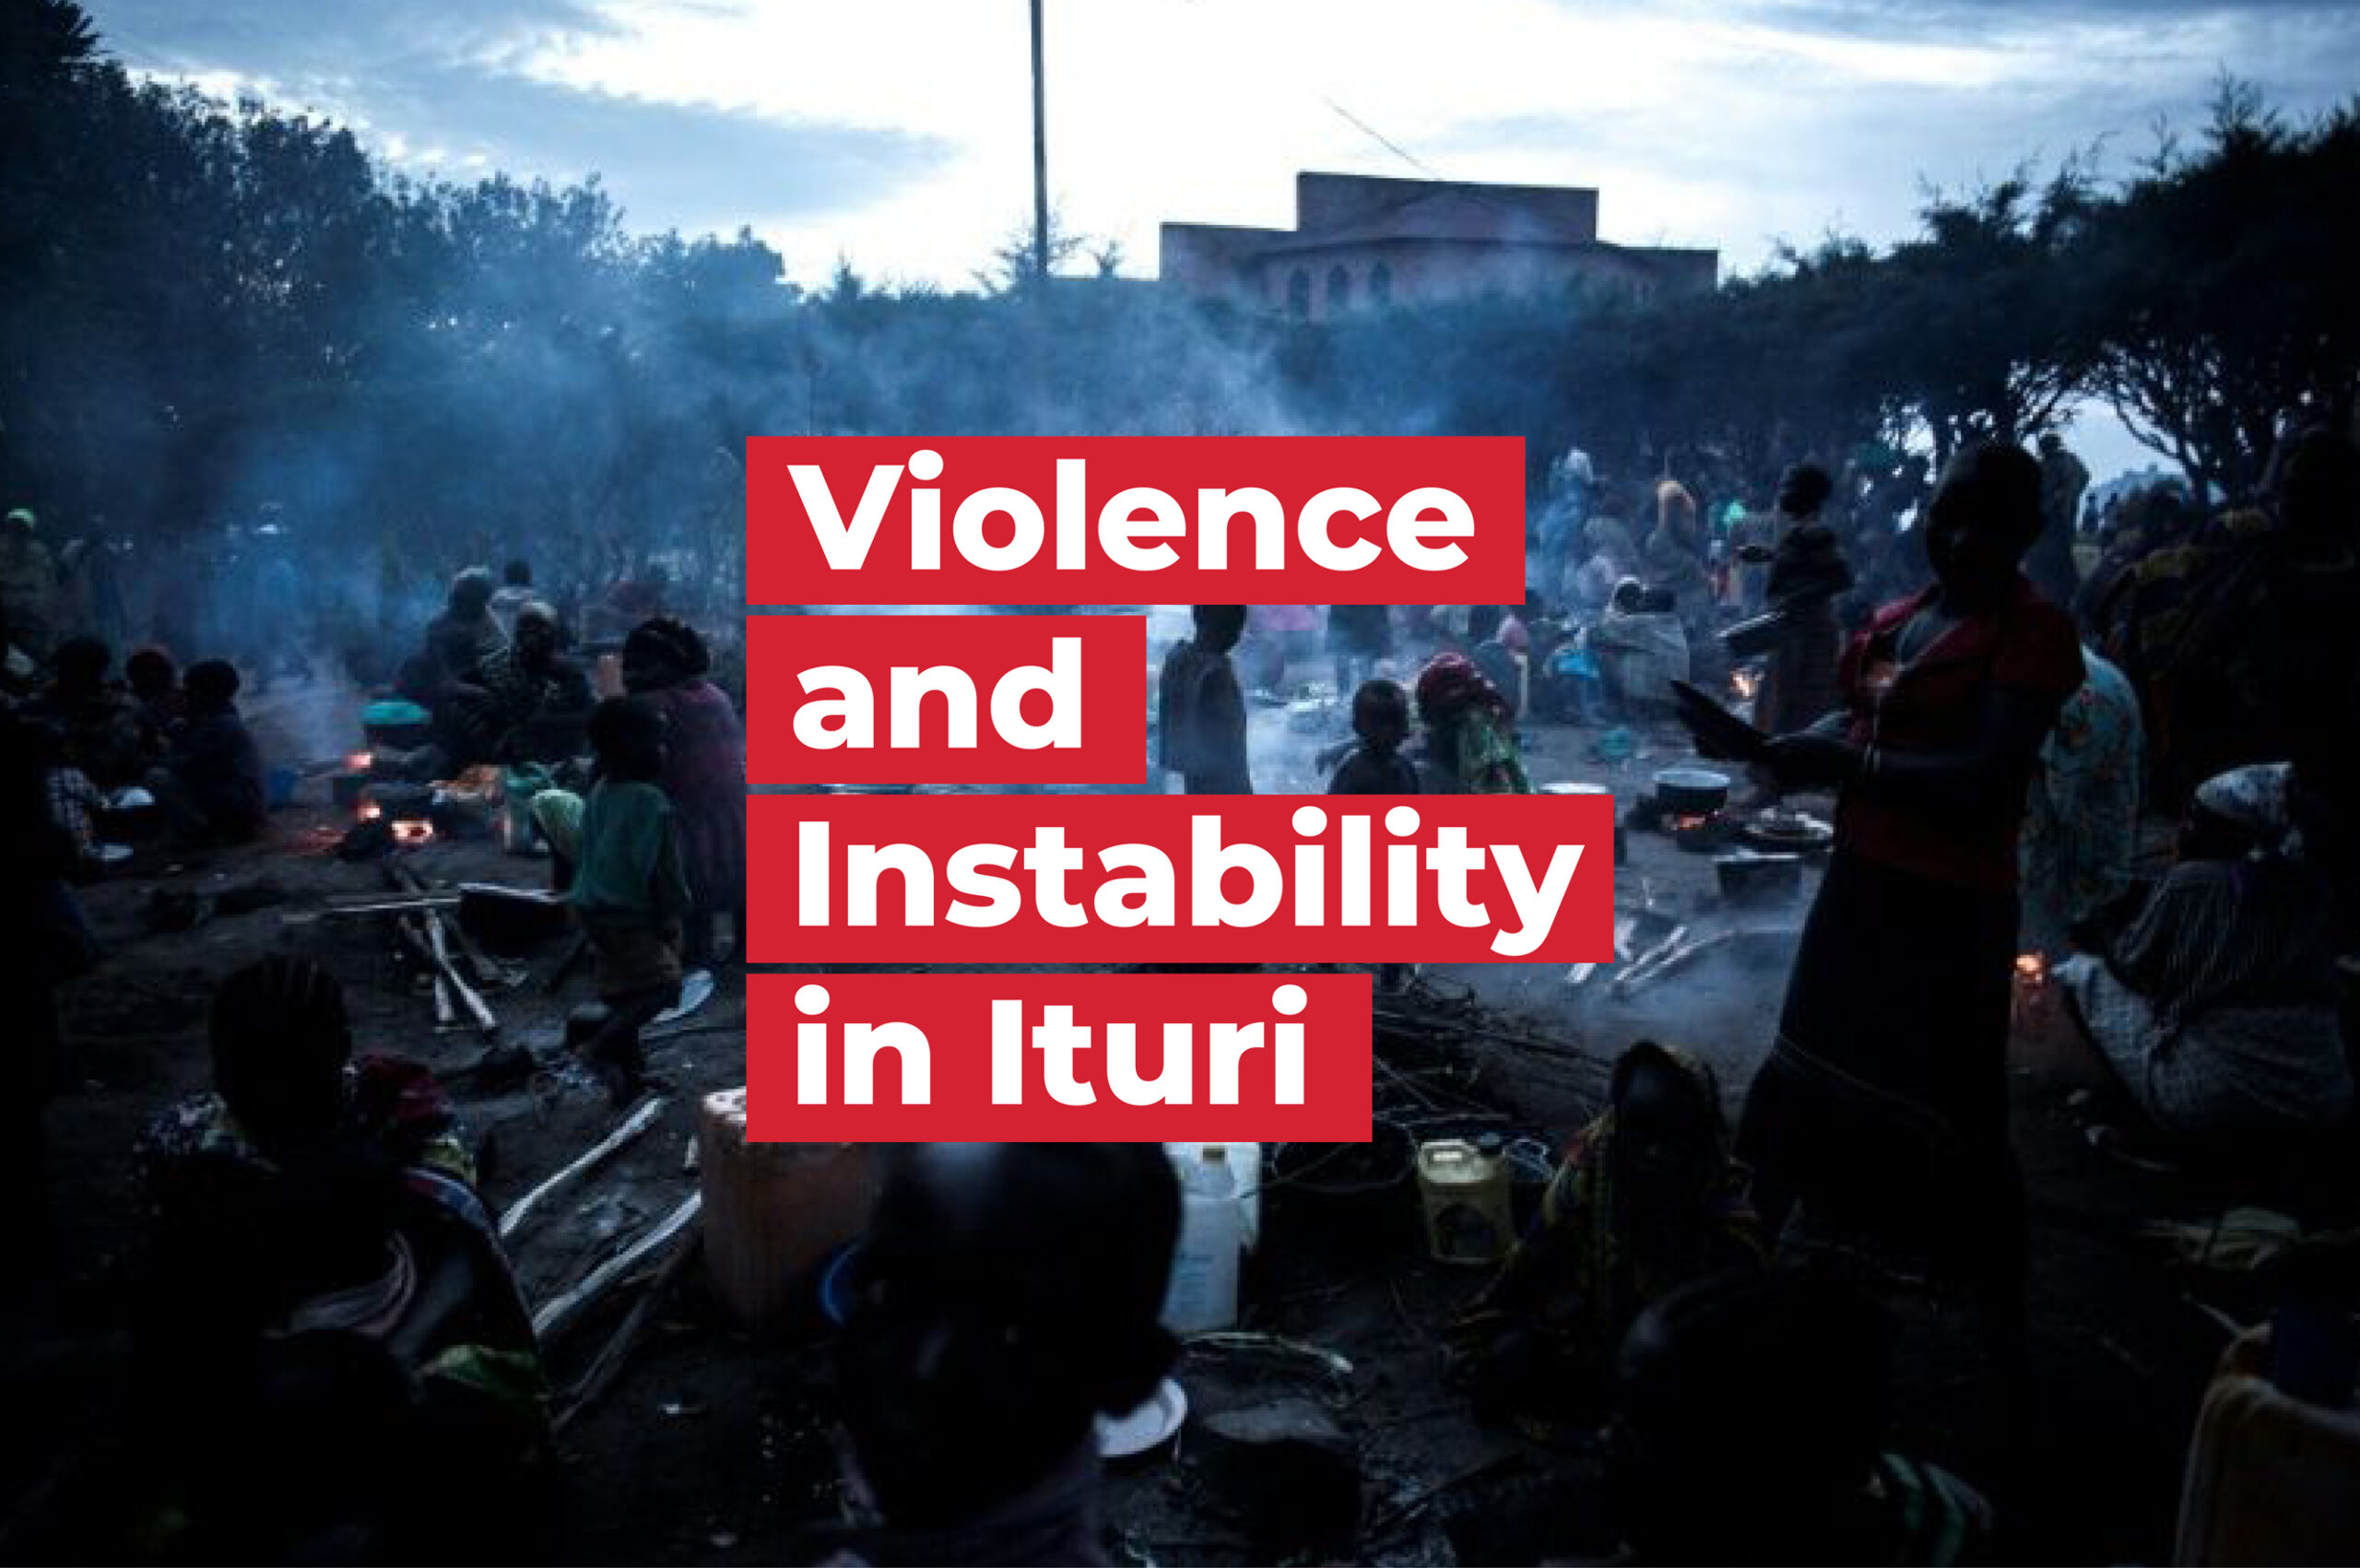 GIC_Violence and Instability in Ituri_2b